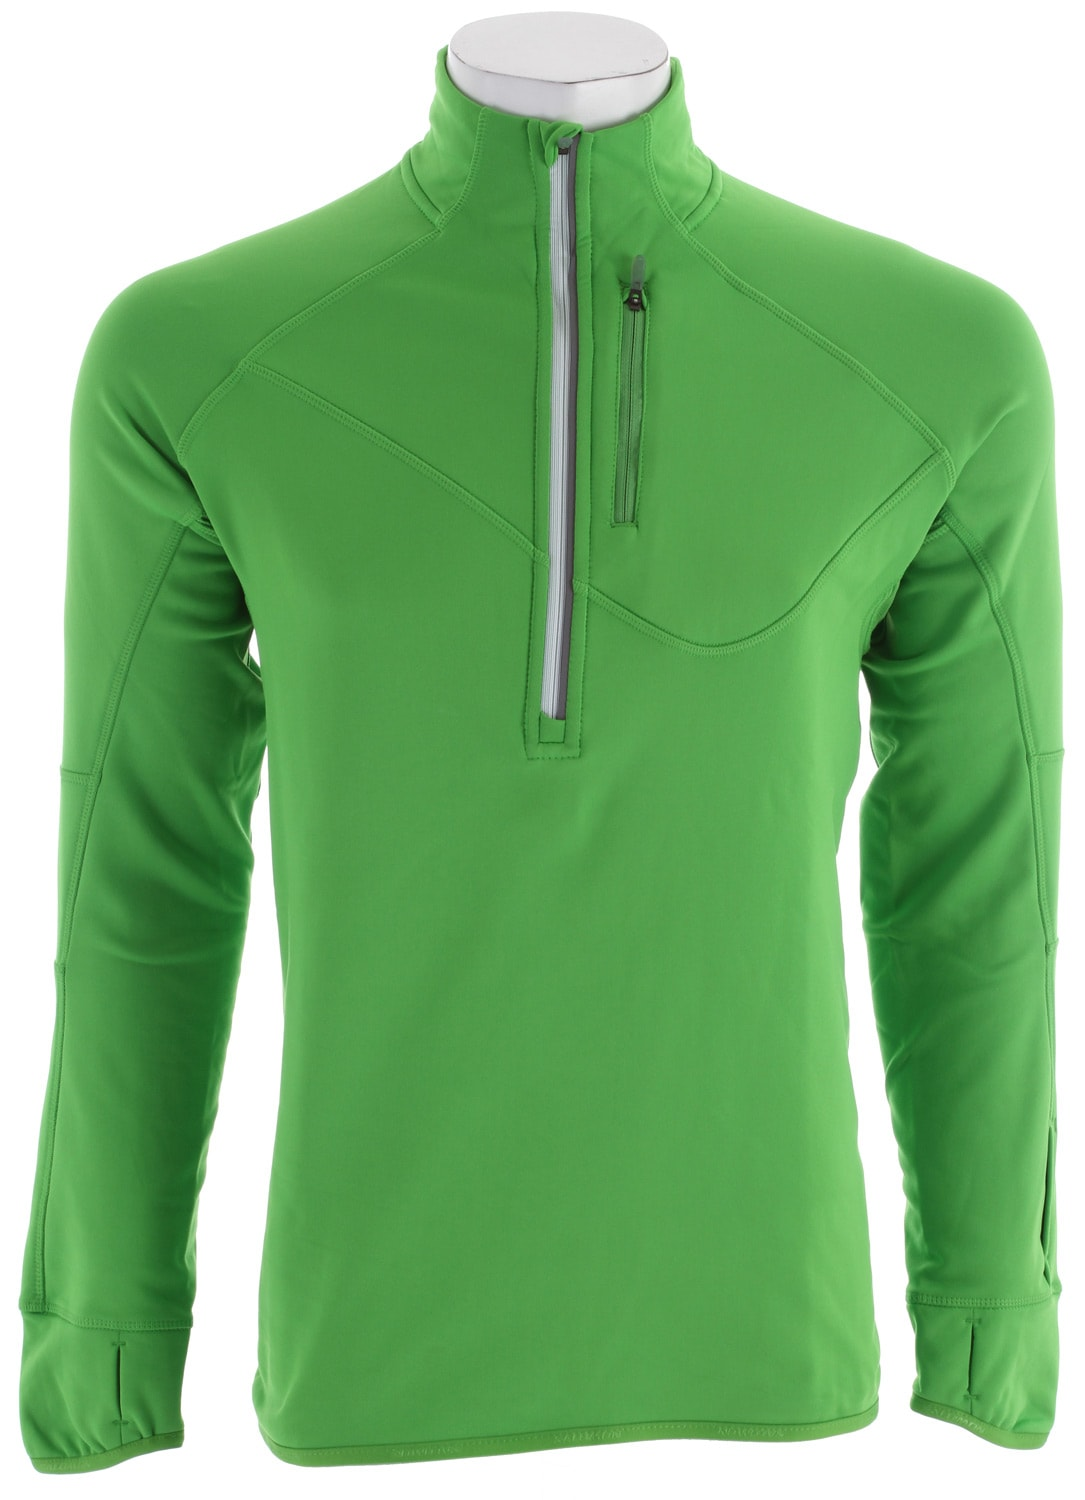 Shop for Salomon Swift Midlayer Baselayer Top Bright Green - Men's